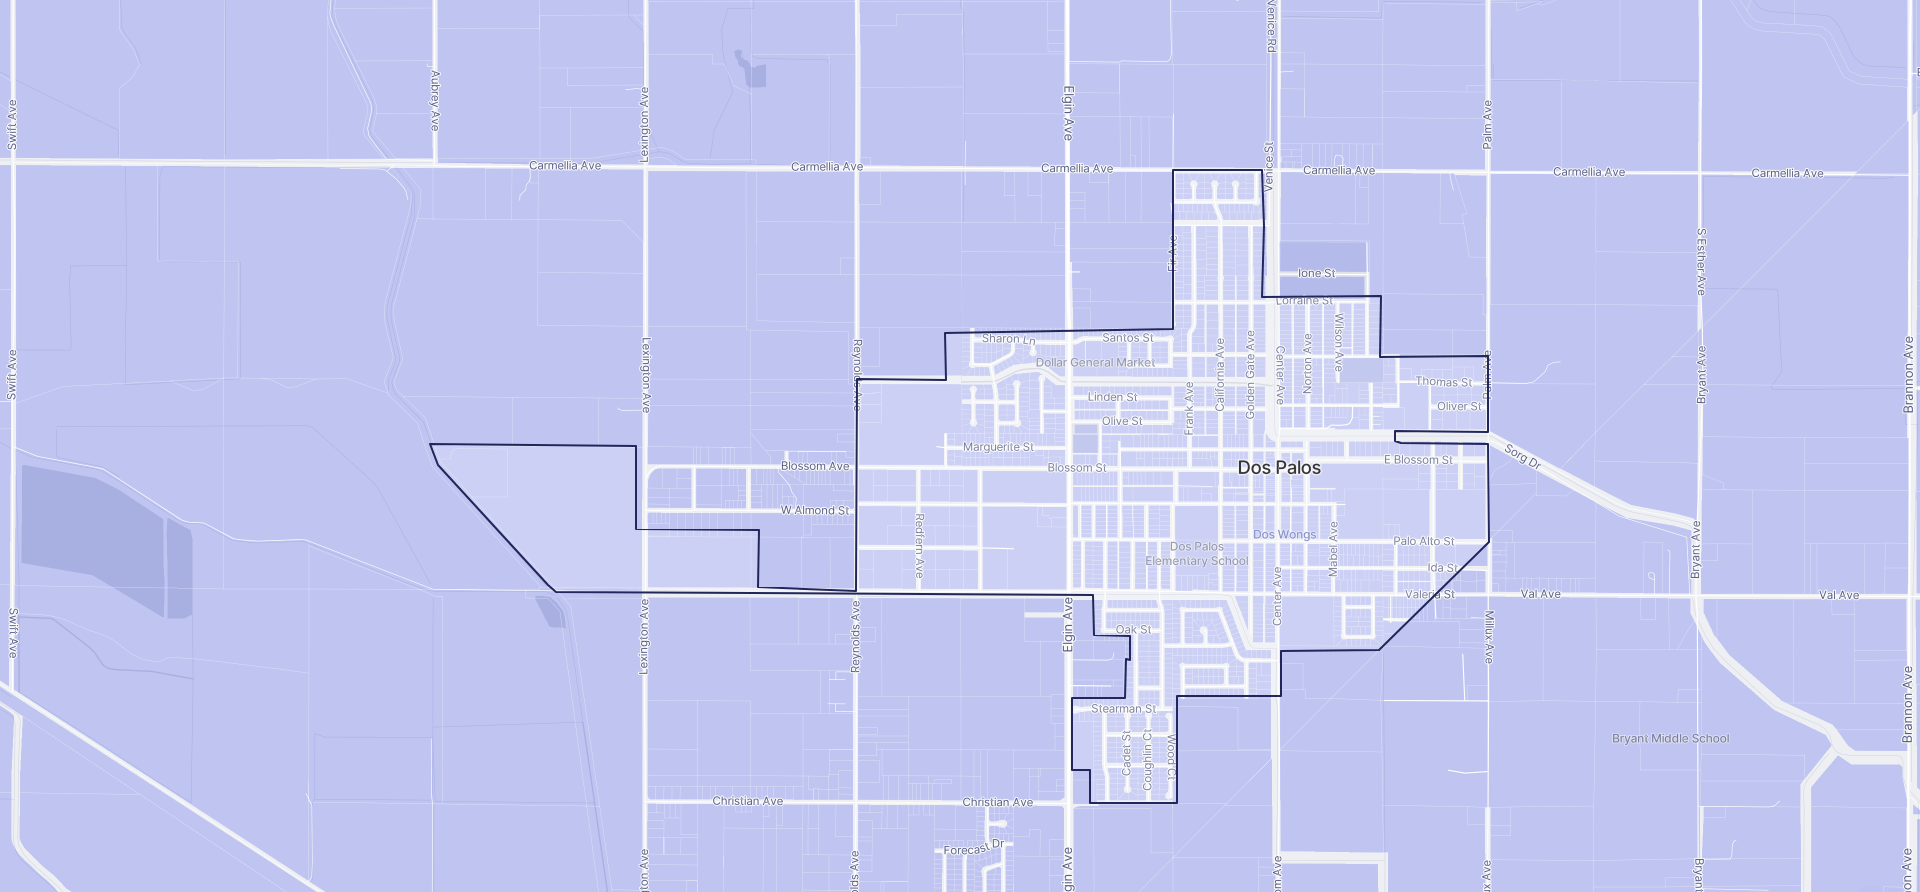 Image of Dos Palos boundaries on a map.